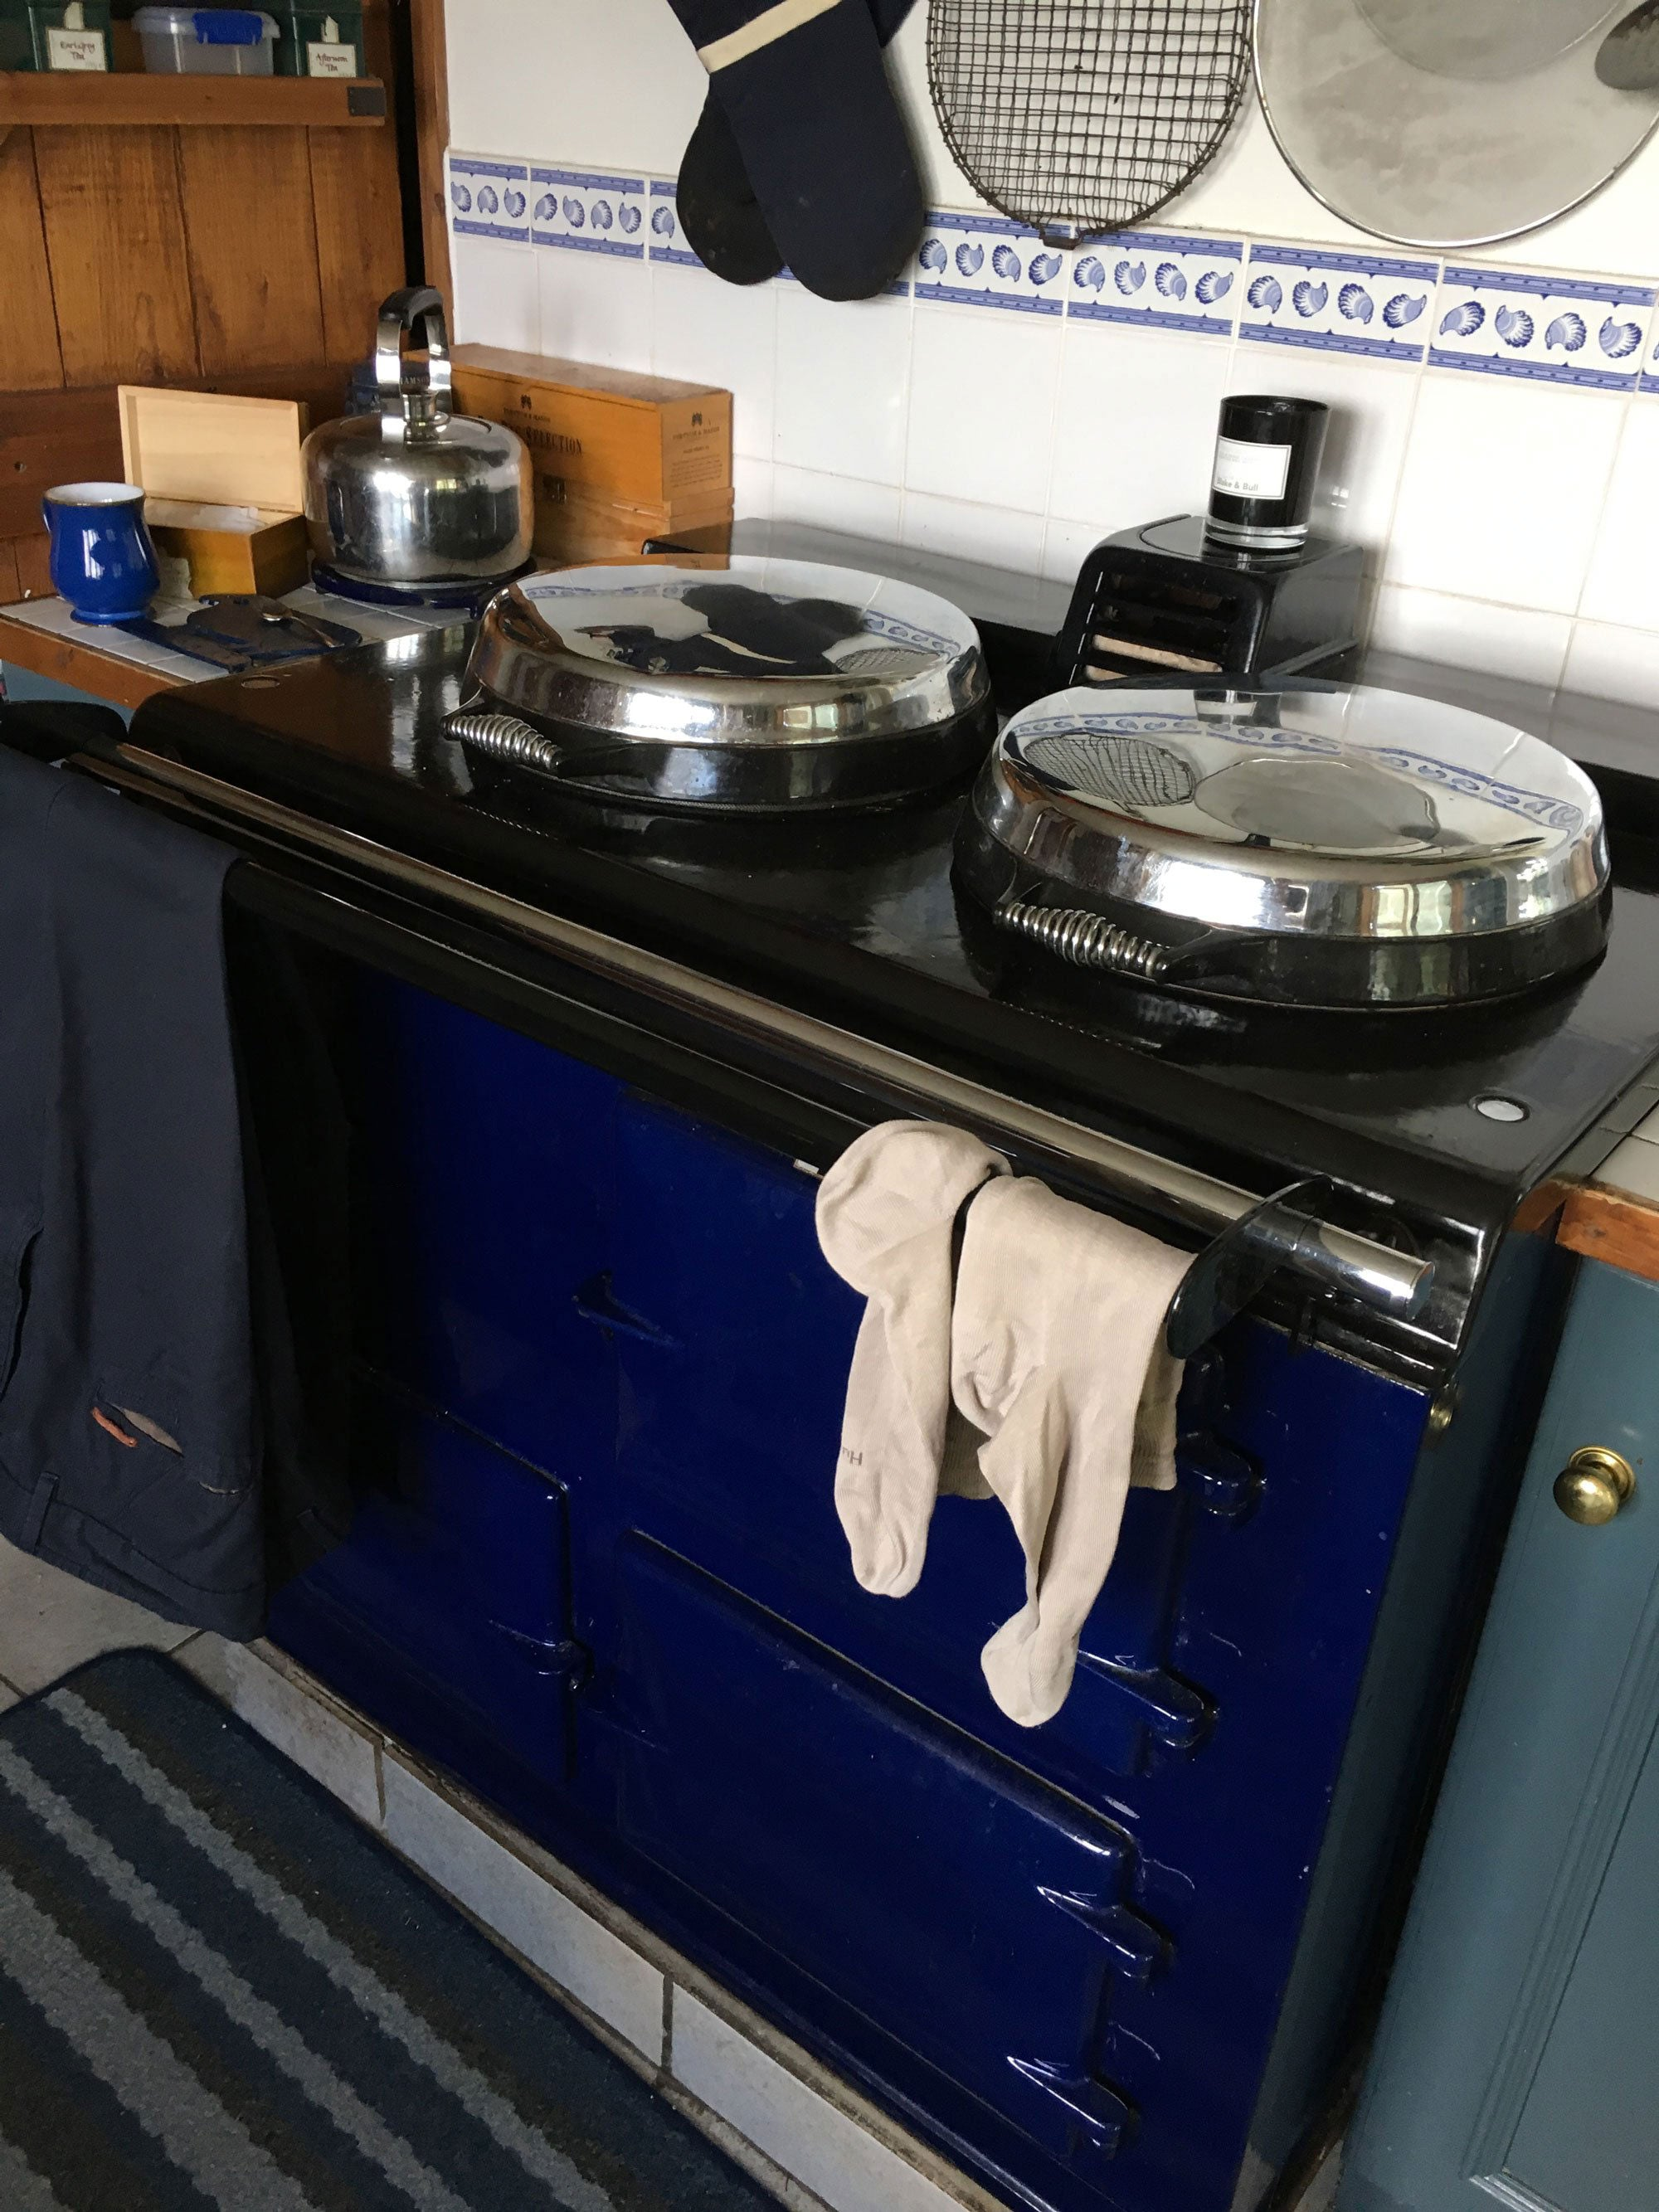 Blue Aga range cooker with drying rail